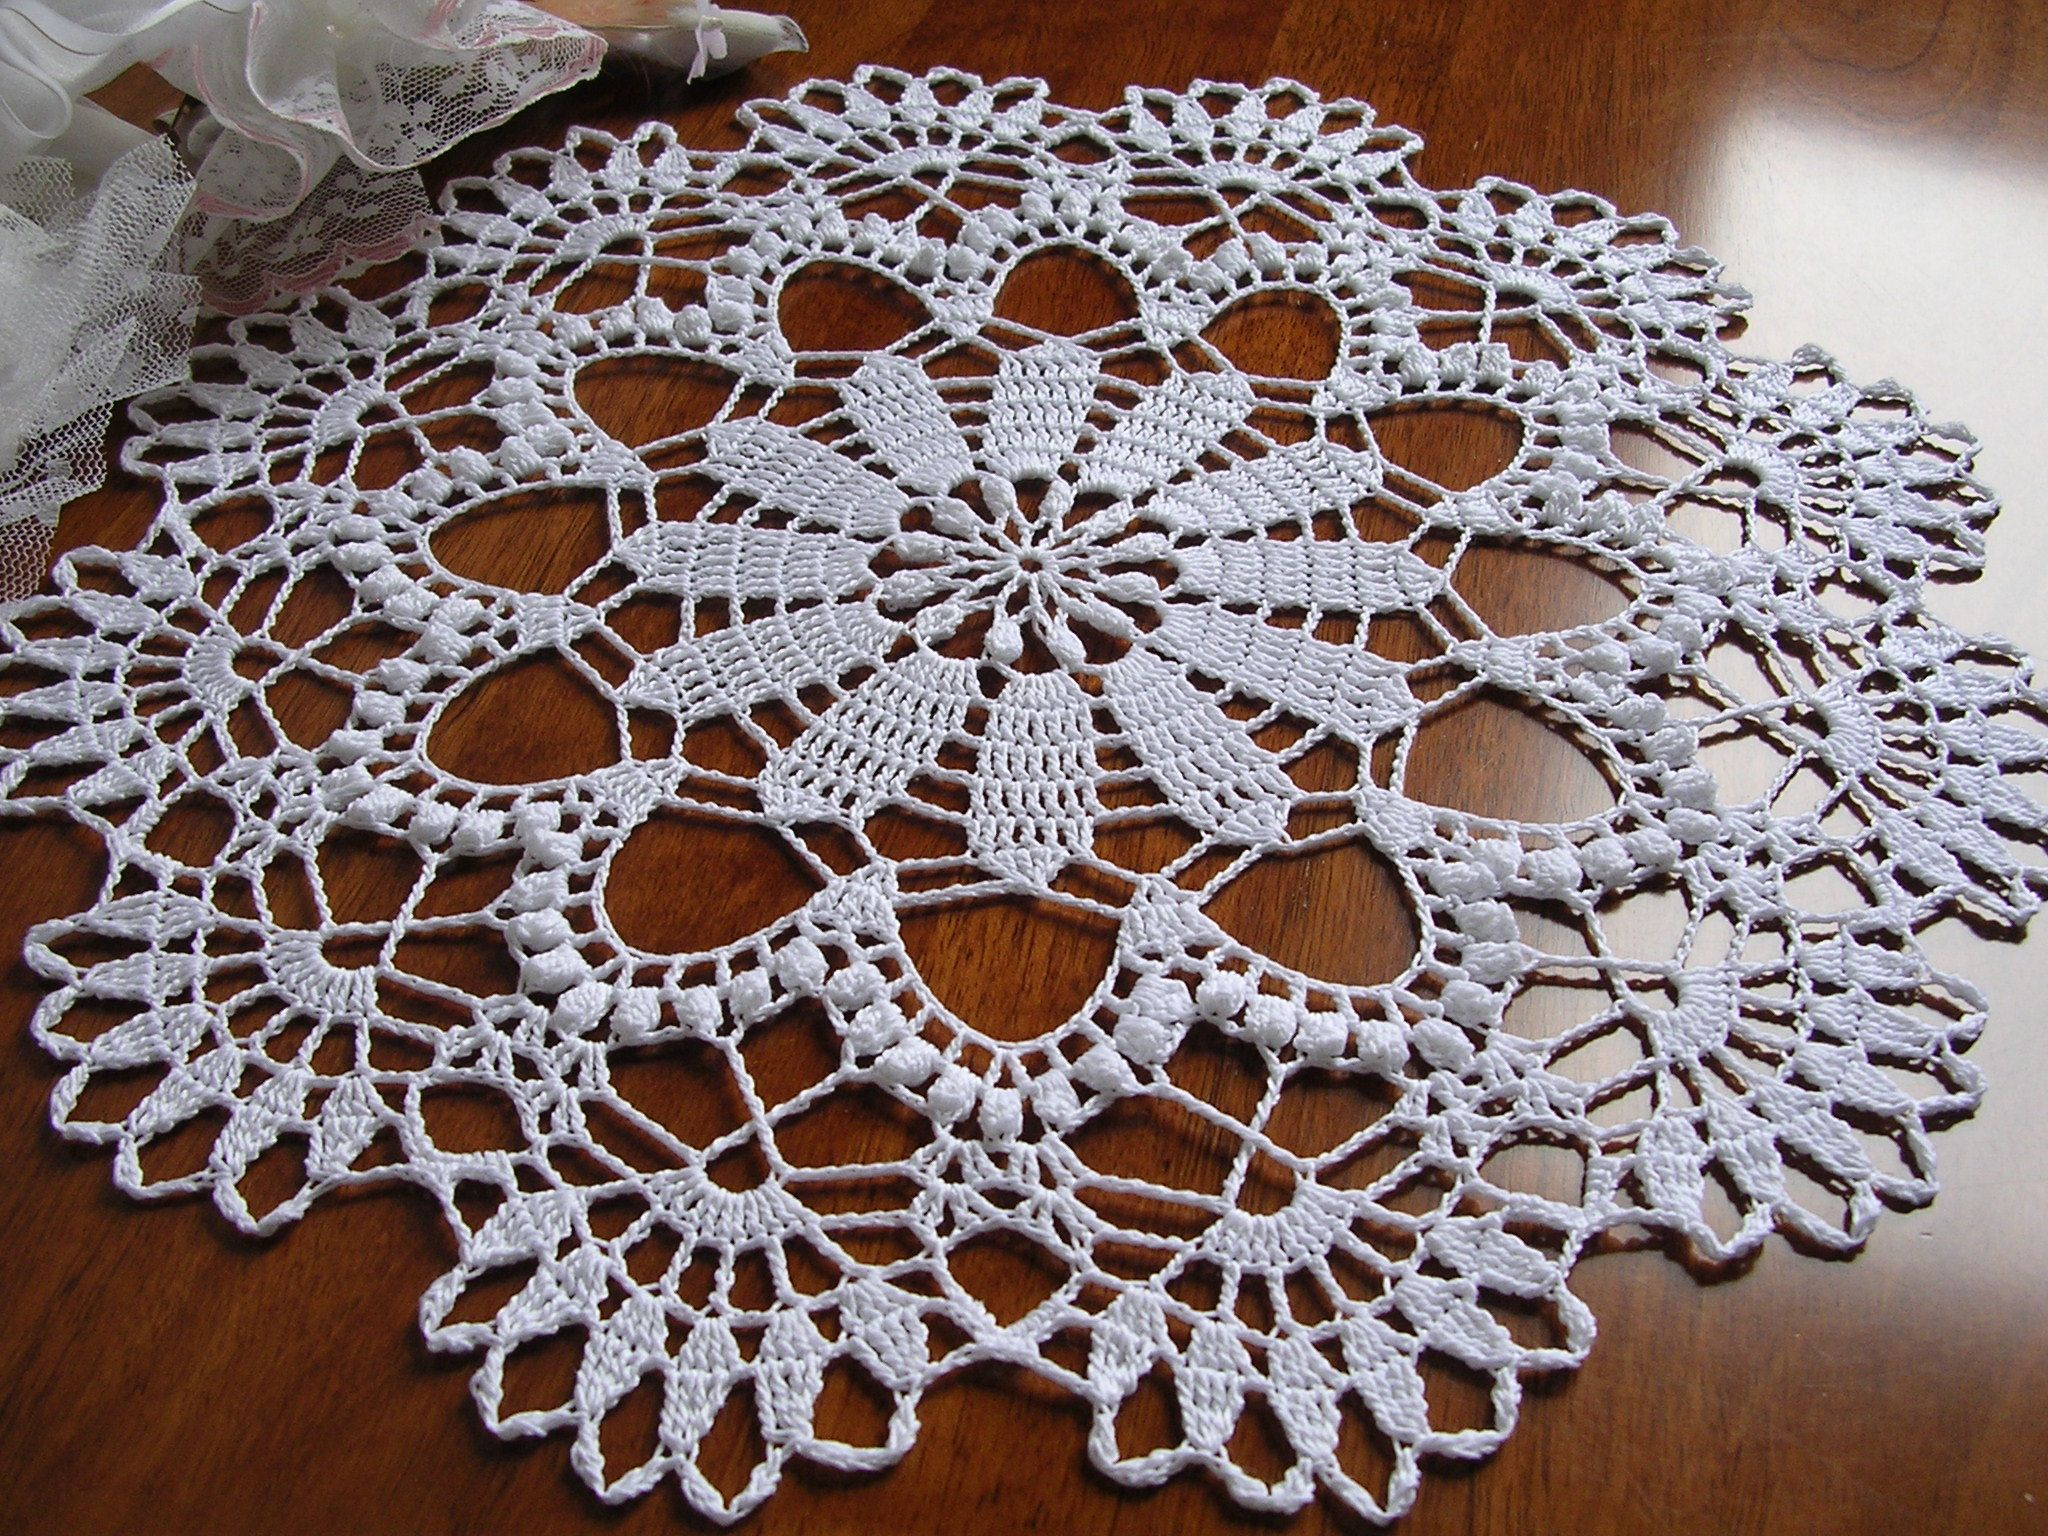 Round Doily Pattern Vintage Table Placemat Crocheted Centerpiece Doily Crocheting pattern 15 12 Diameter  *PDF Instant Download*